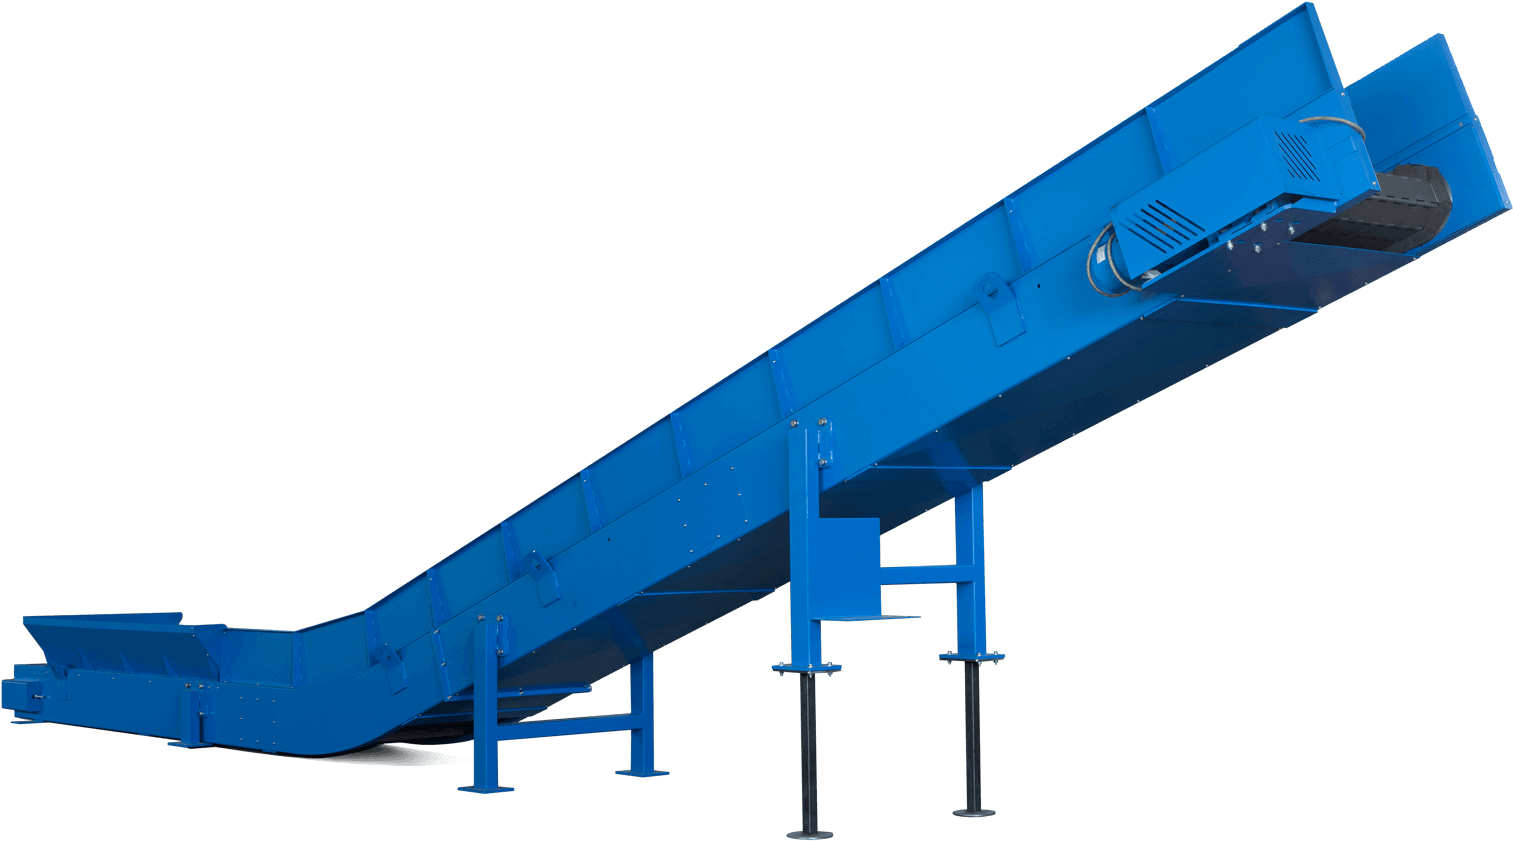 HD Scc Designs And Manufactures Customized Conveyor Belts.